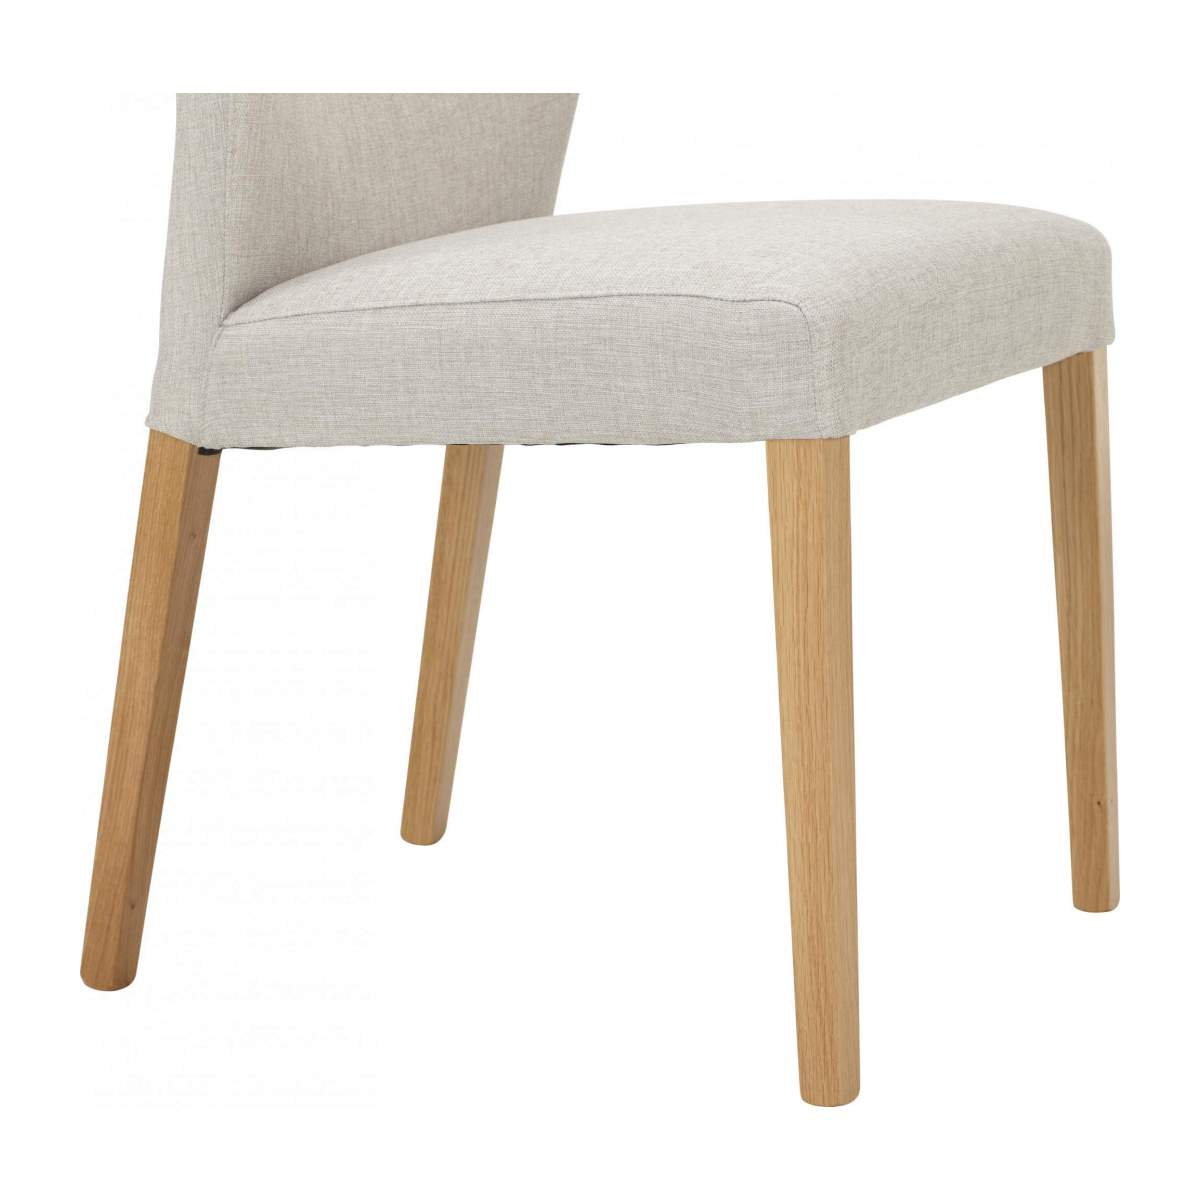 Dining room chair n°6